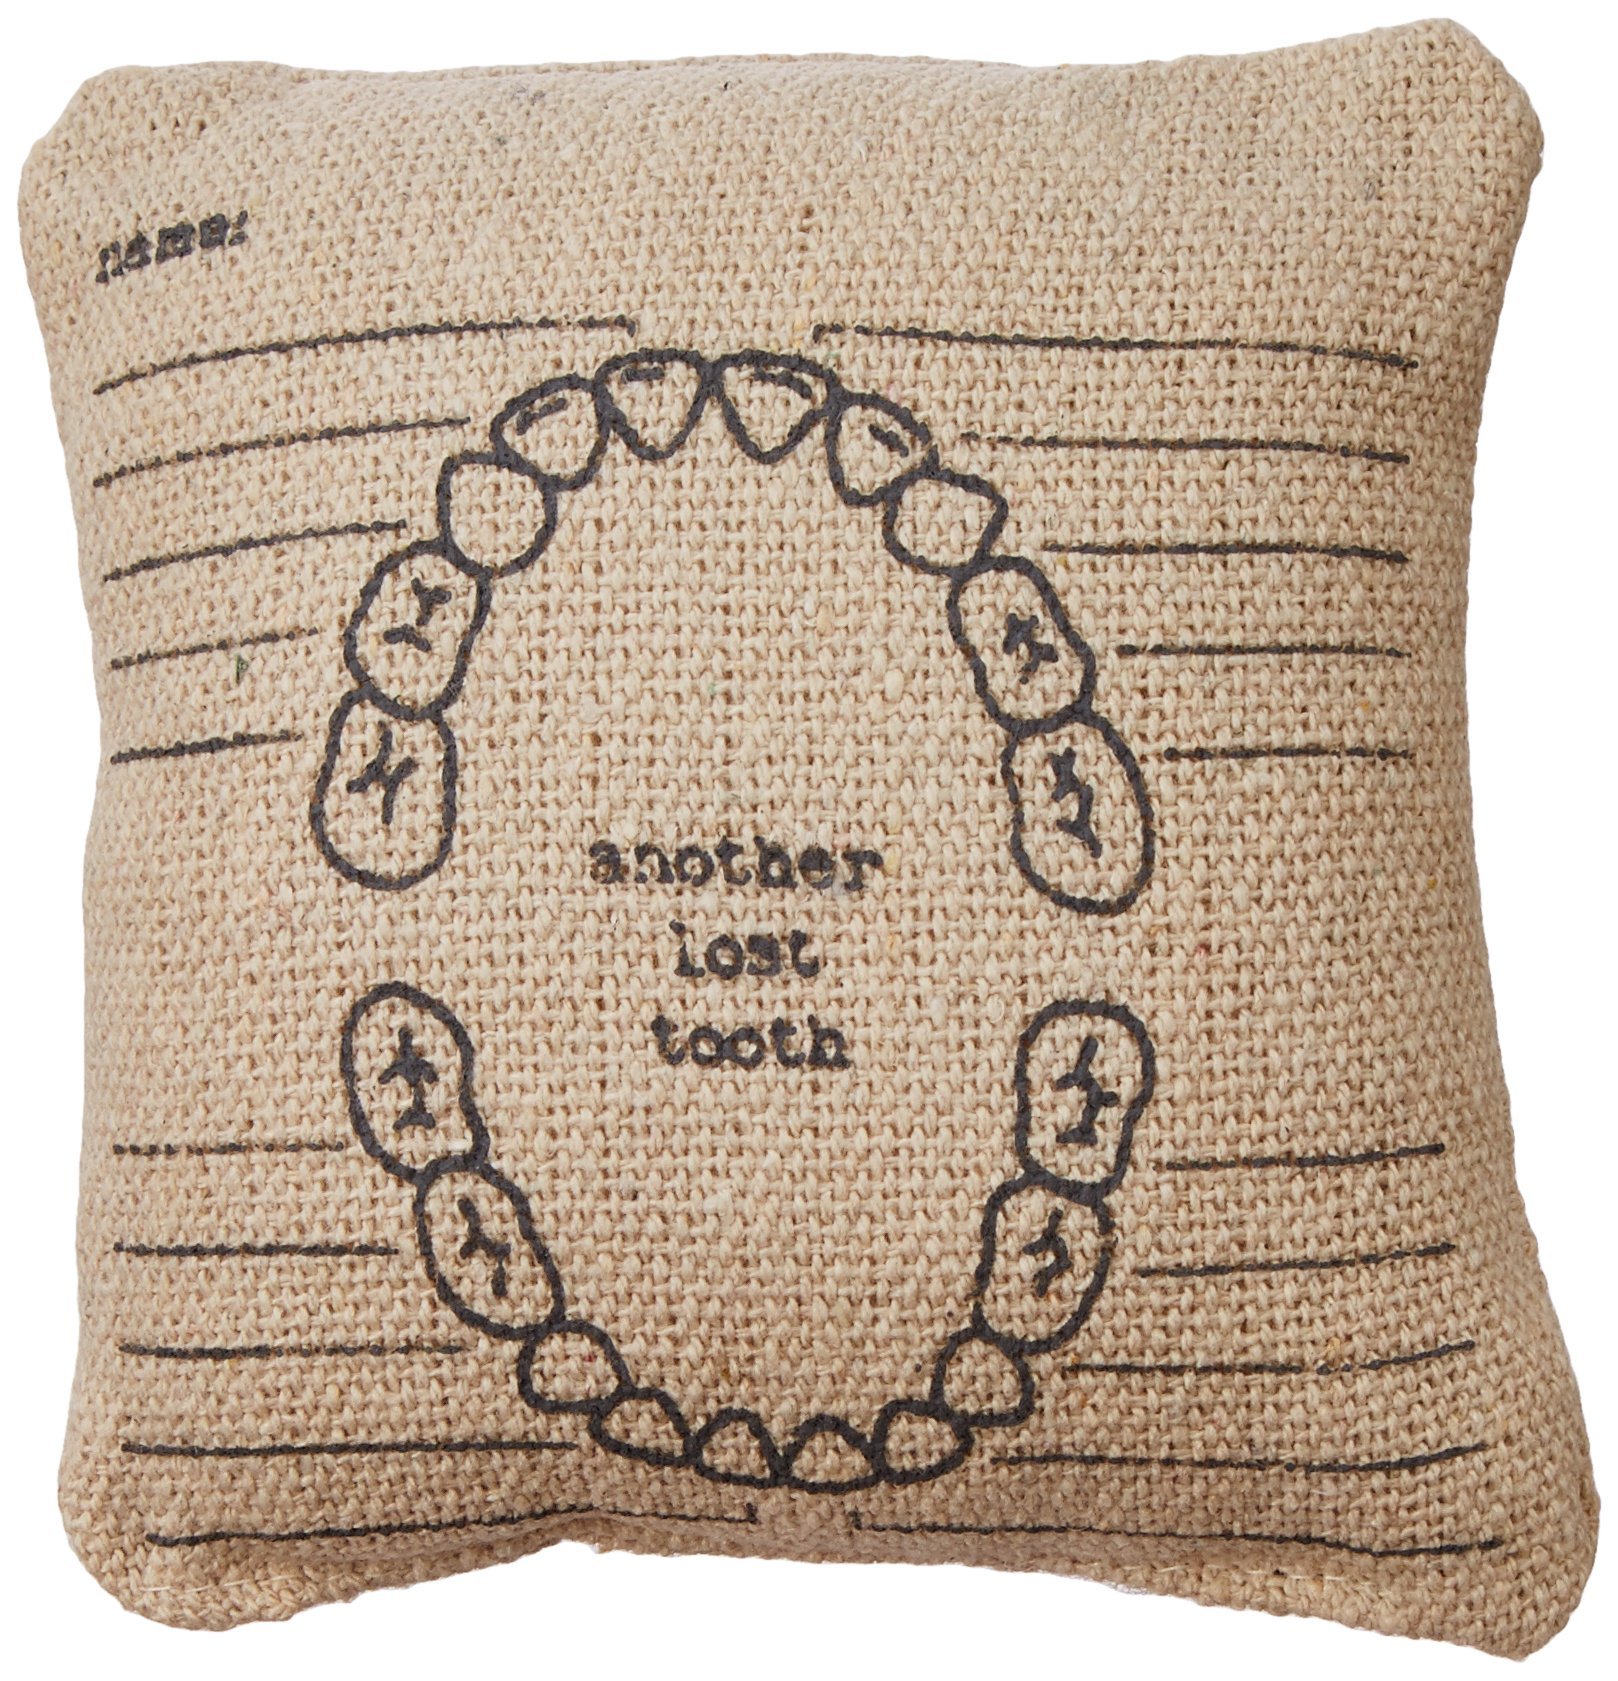 "Primitives by Kathy Mini Linen Throw Pillow, 5.25"" x 5.25"", Another Lost Tooth - STASH THE TOOTH FAIRY CASH: Mini linen pillow with pocket in back to hold all the loot from the tooth fairy DIMENSIONS: measures 5.25 x 5.25-Inches; 100% polyester fiber insert SENTIMENT READS: Another Tooth Lost - living-room-soft-furnishings, living-room, decorative-pillows - 91fPwg0ODOL -"